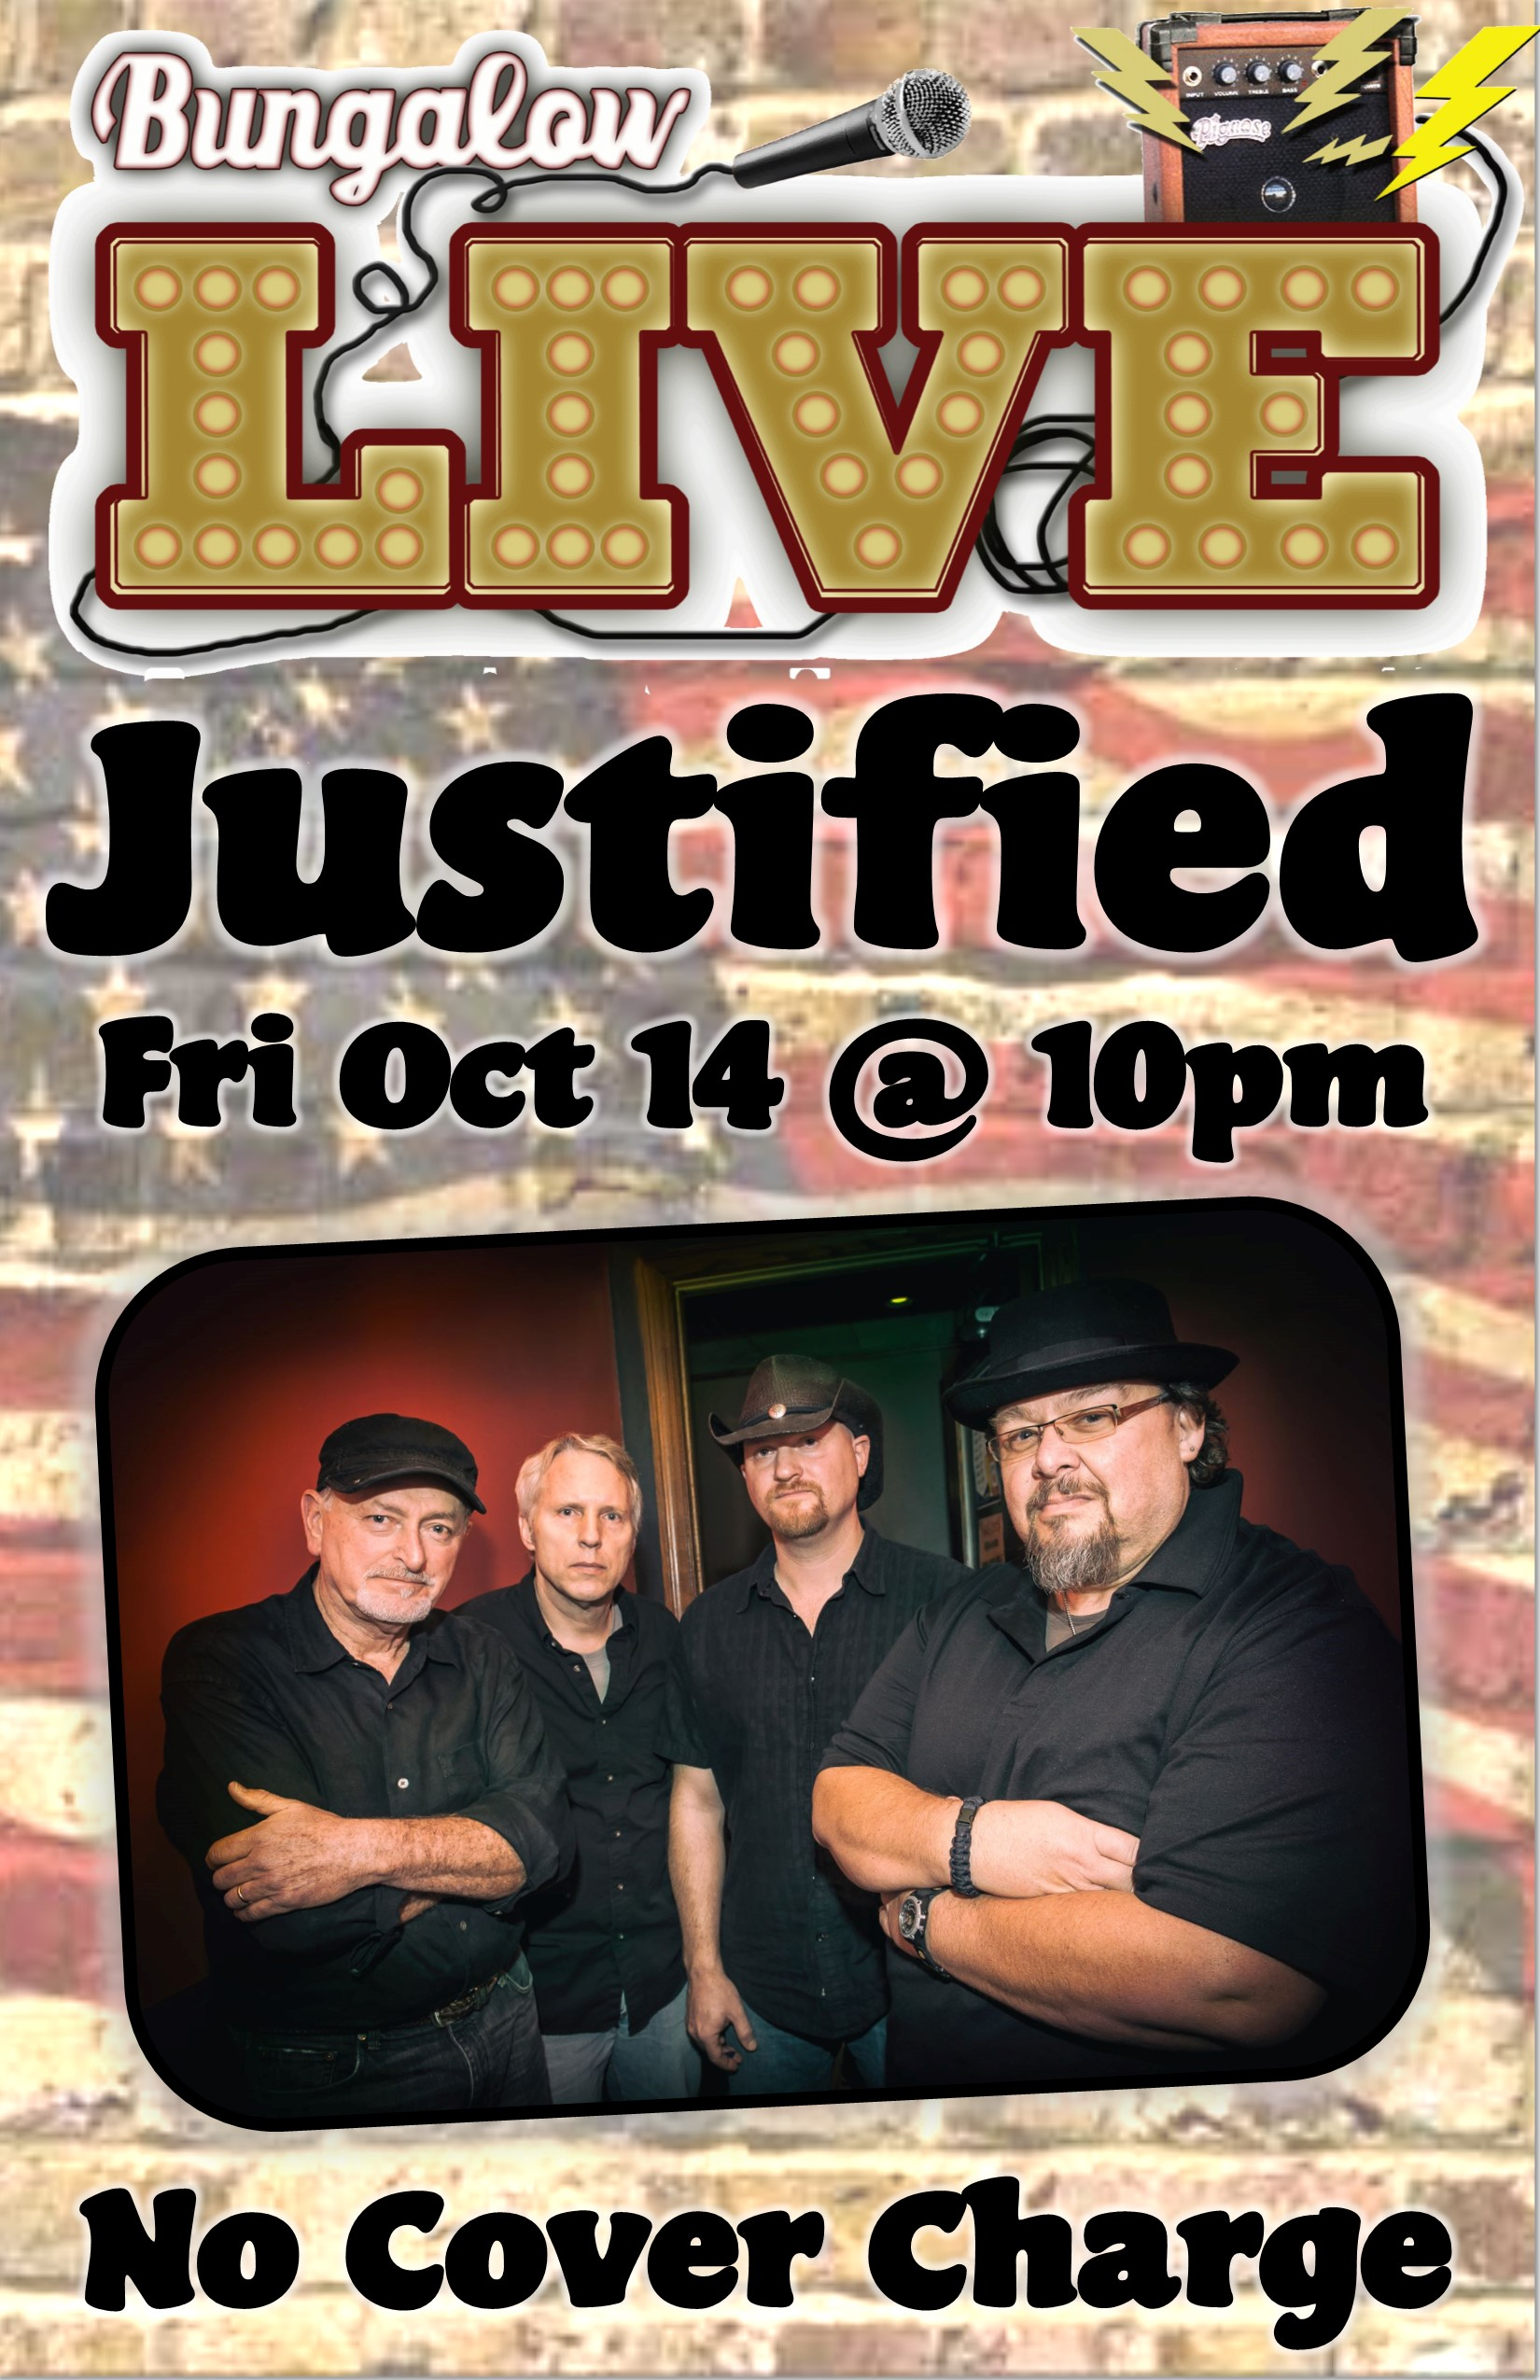 Justified Band 11x17